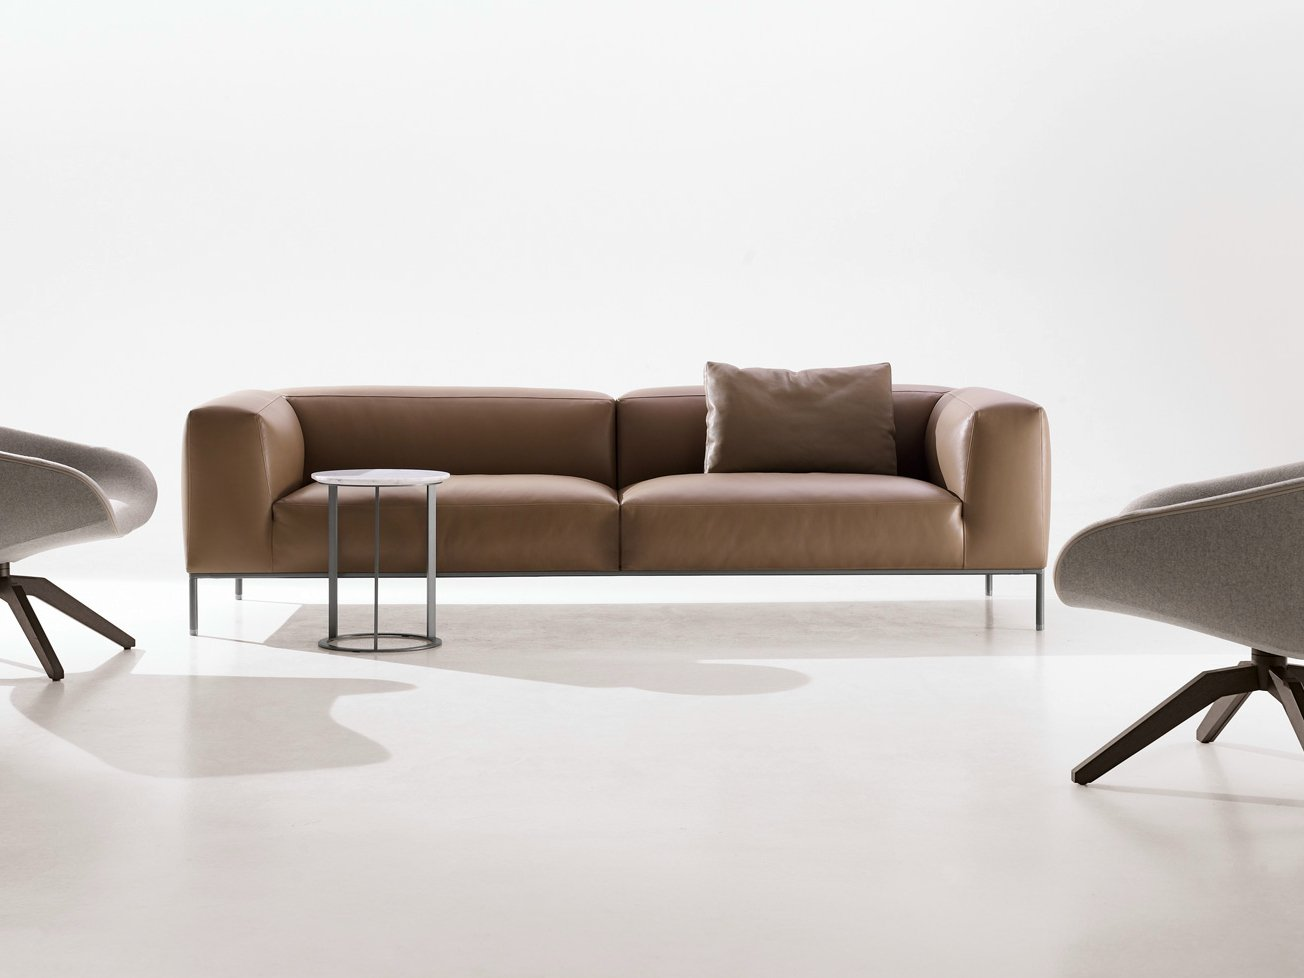 Frank leather sofa by b b italia design antonio citterio for B b couch